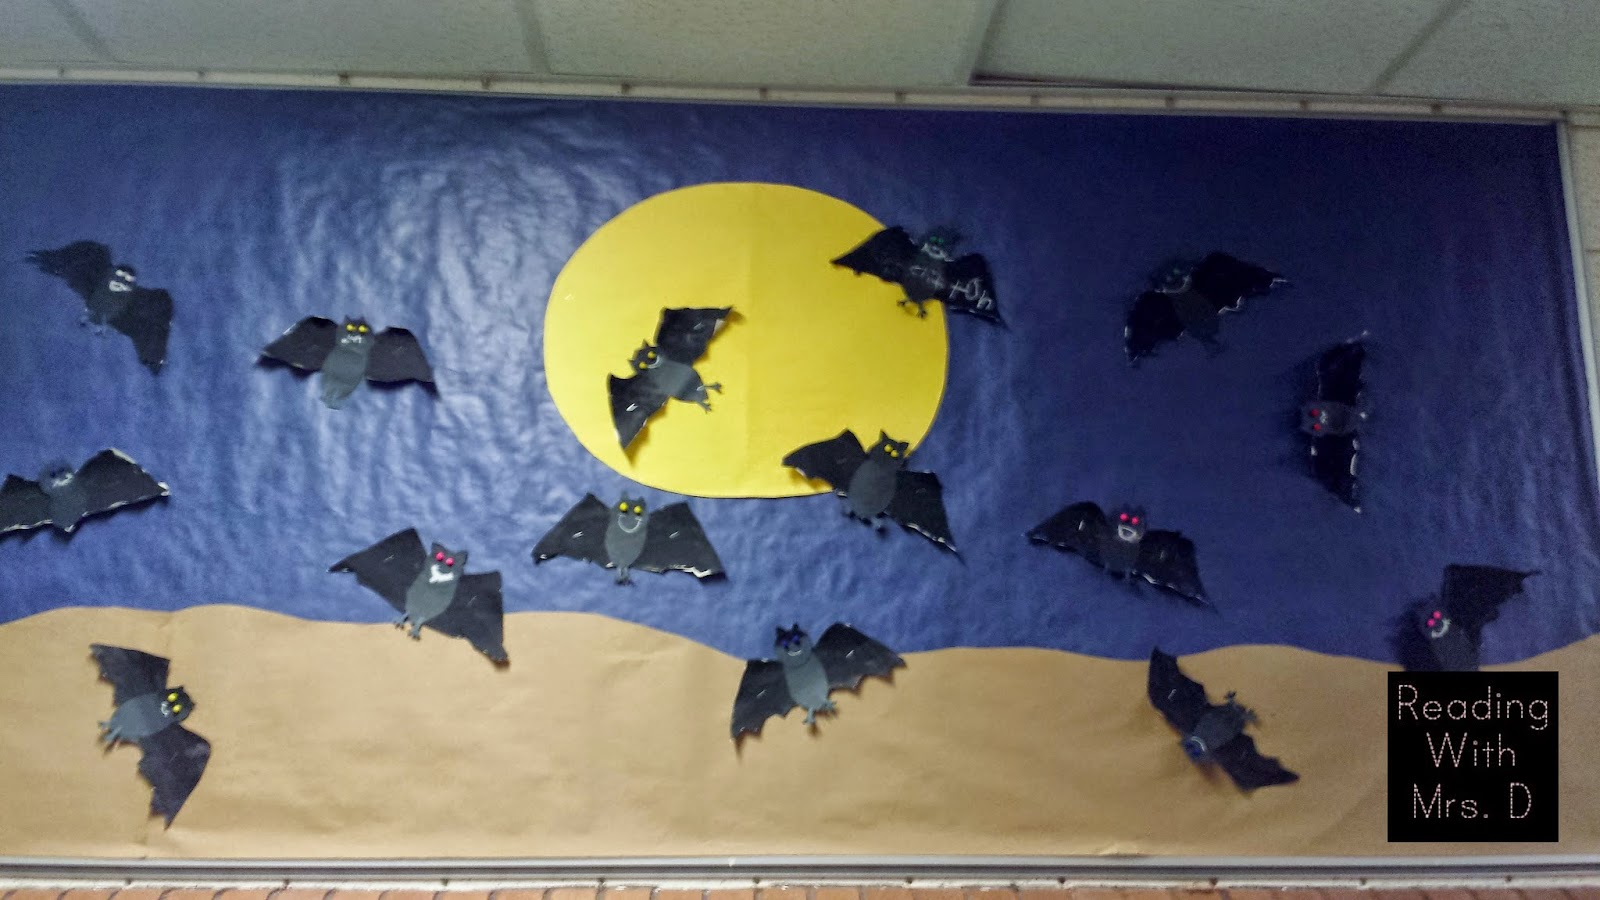 Reading with Mrs. D: Final Halloween Bulletin board post 2014